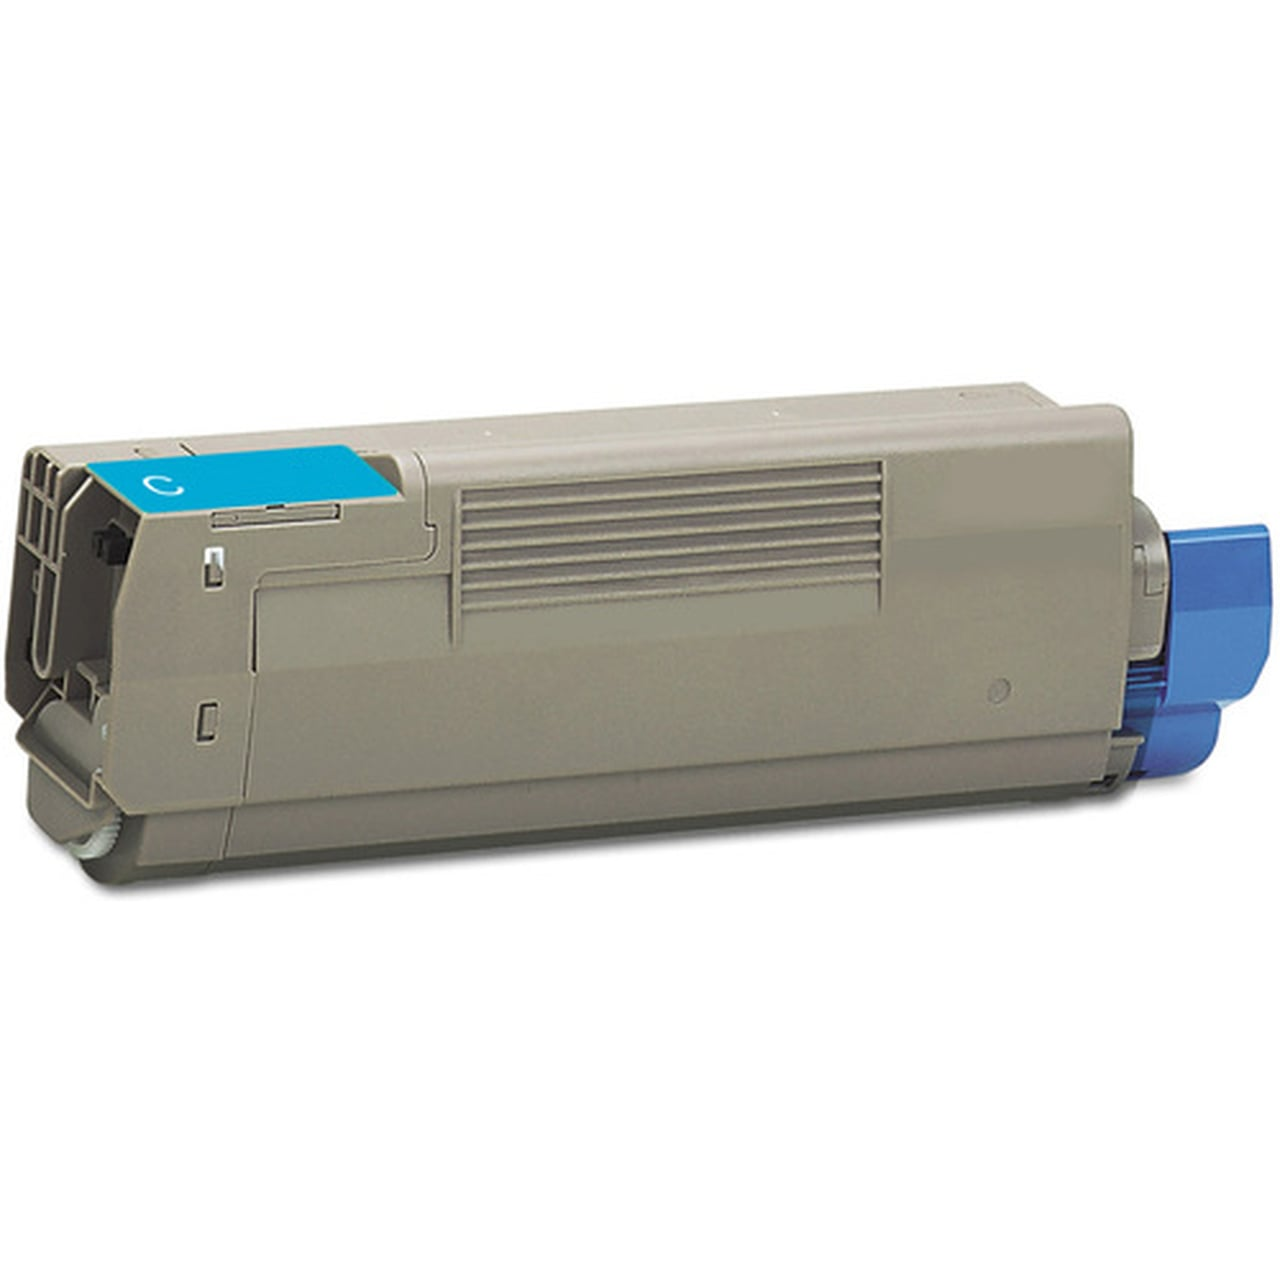 43866103 Toner Cartridge - Okidata New Compatible  (Cyan)